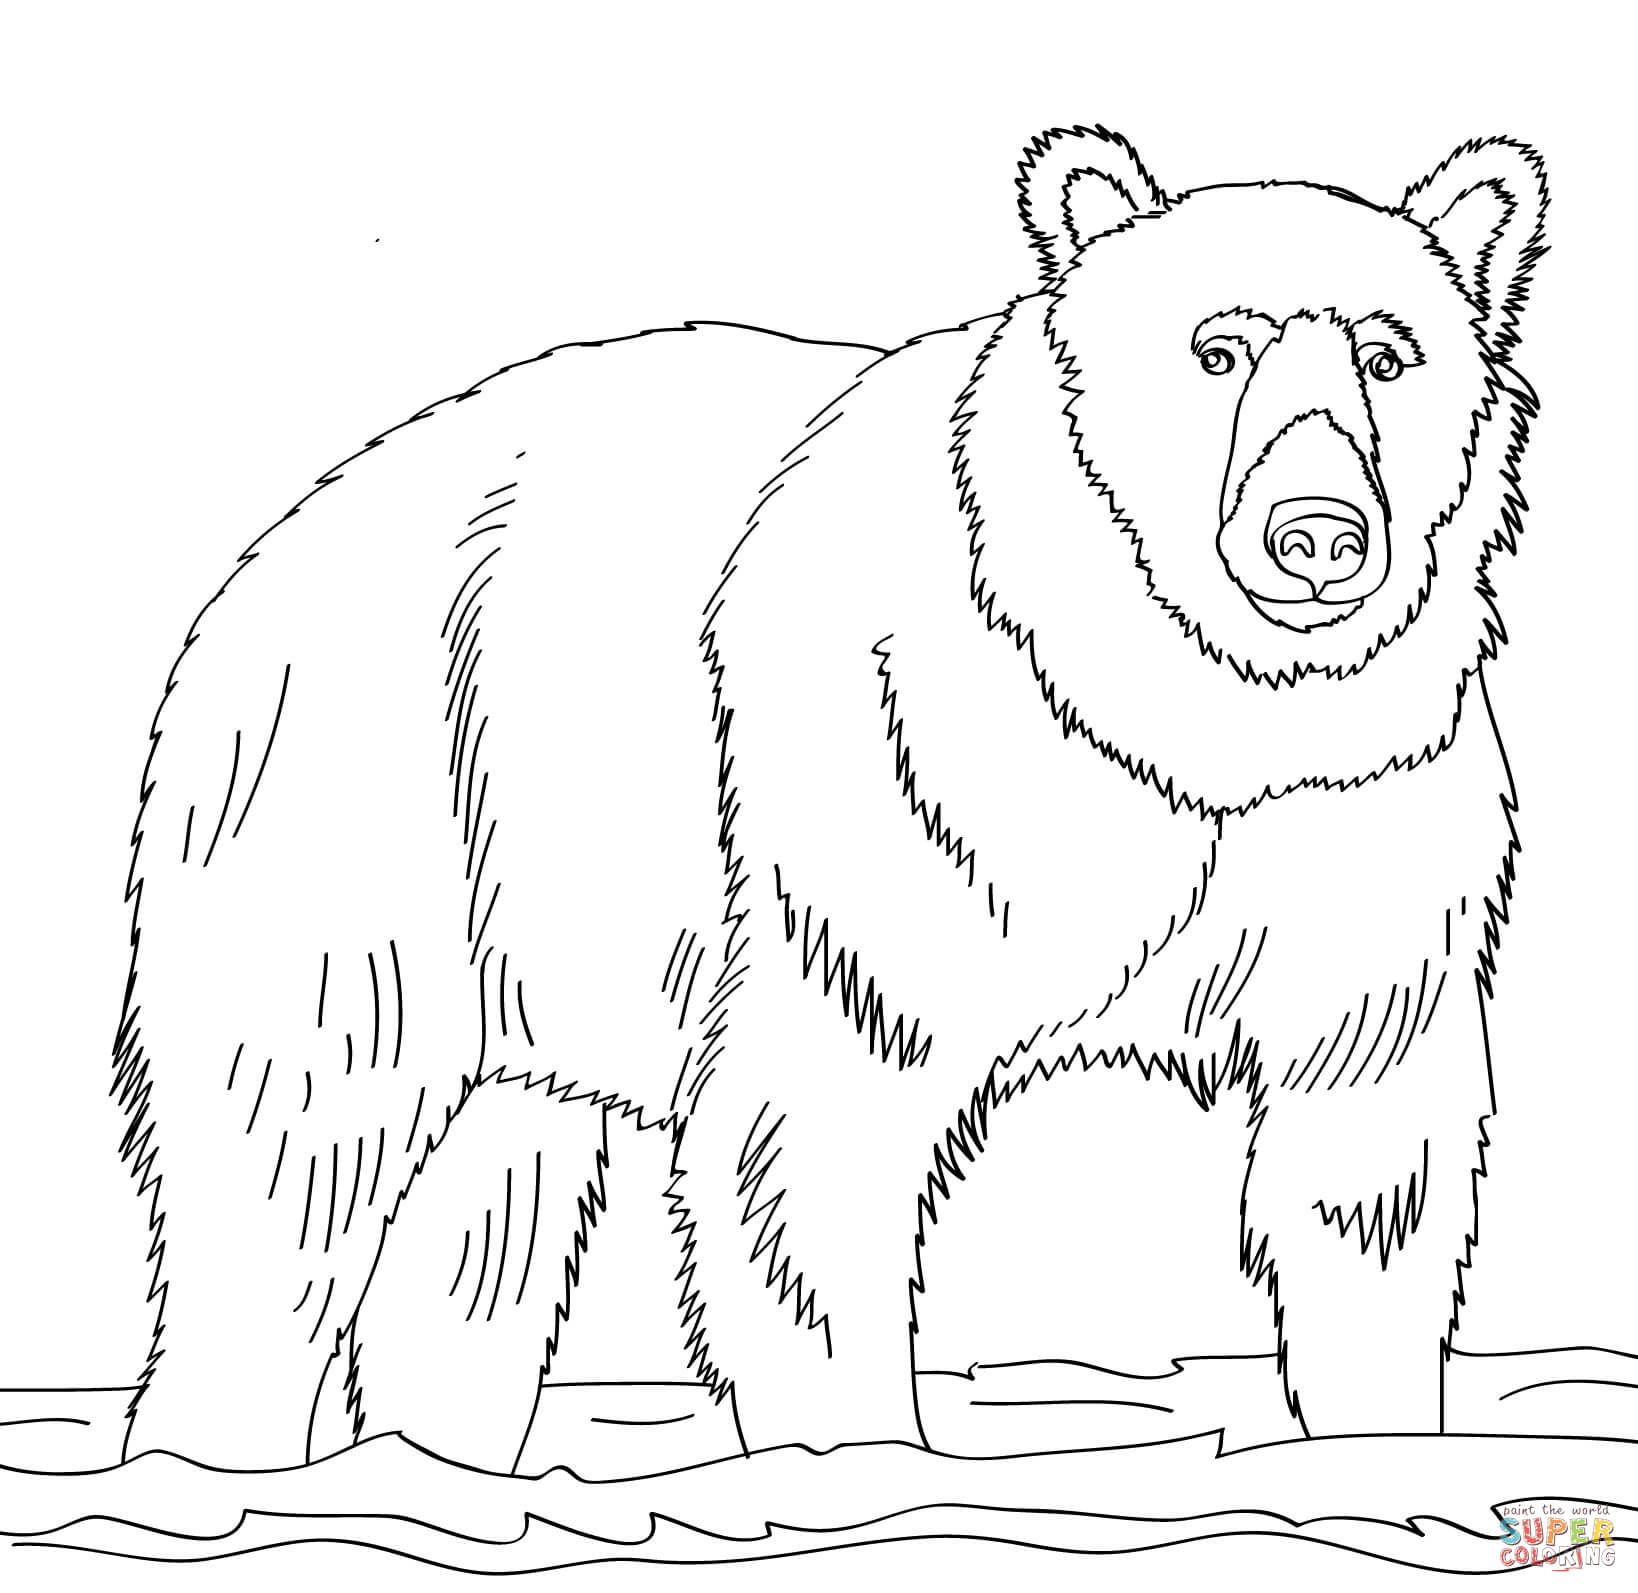 brown bear colouring page brown bear brown bear what do you see coloring pages colouring brown bear page